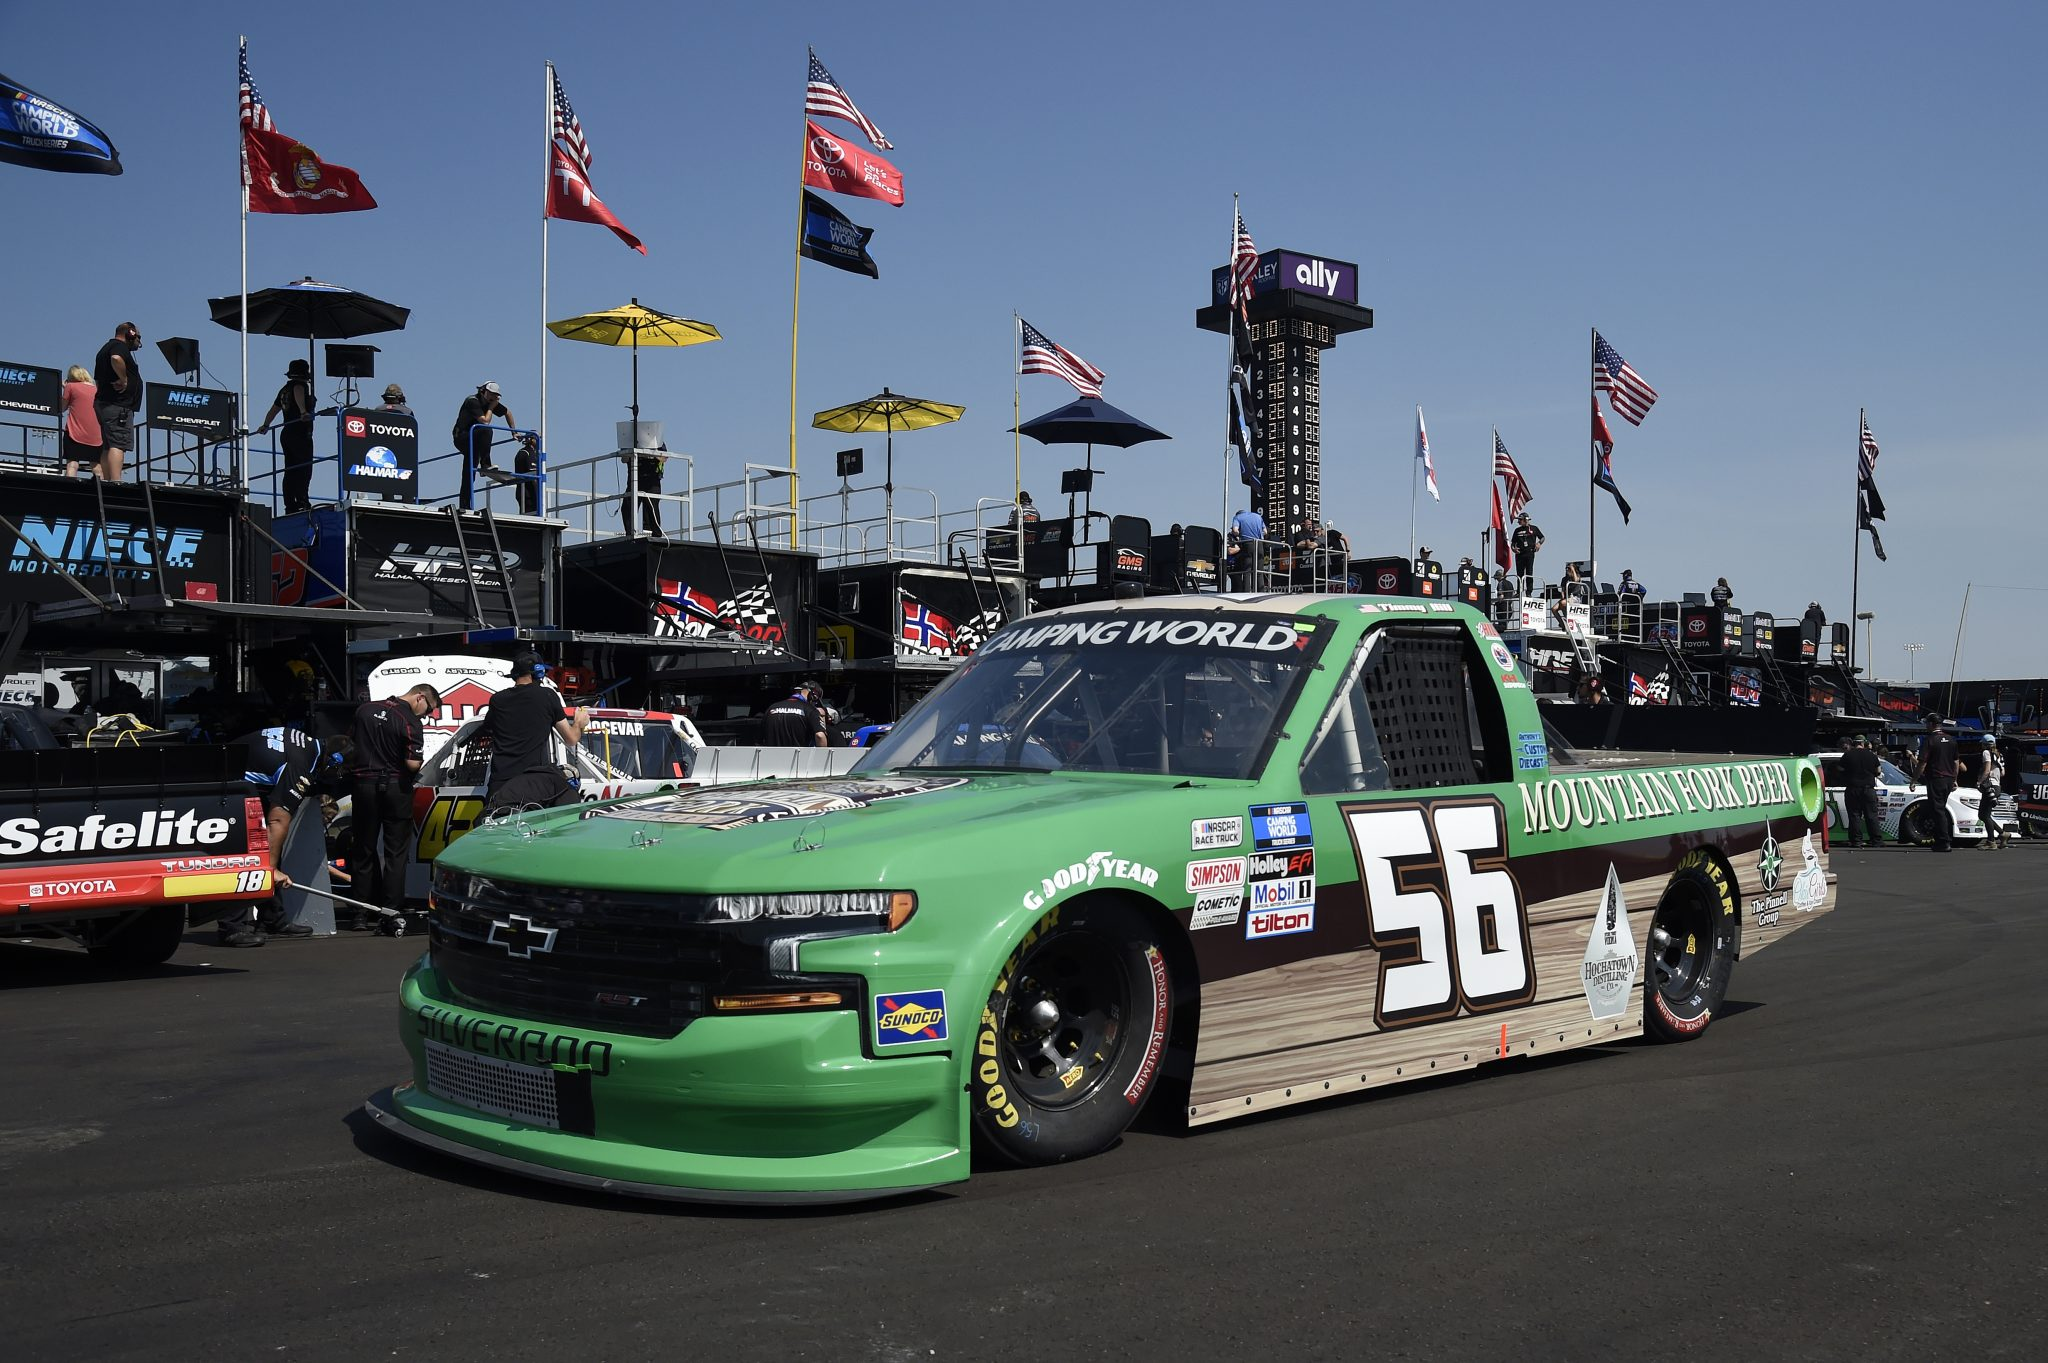 LEBANON, TENNESSEE - JUNE 18: Timmy Hill, driver of the #56 Mountain Fork Brewery Chevrolet, drives in the garage area during practice for the NASCAR Camping World Truck Series Rackley Roofing 200 at Nashville Superspeedway on June 18, 2021 in Lebanon, Tennessee. (Photo by Logan Riely/Getty Images) | Getty Images